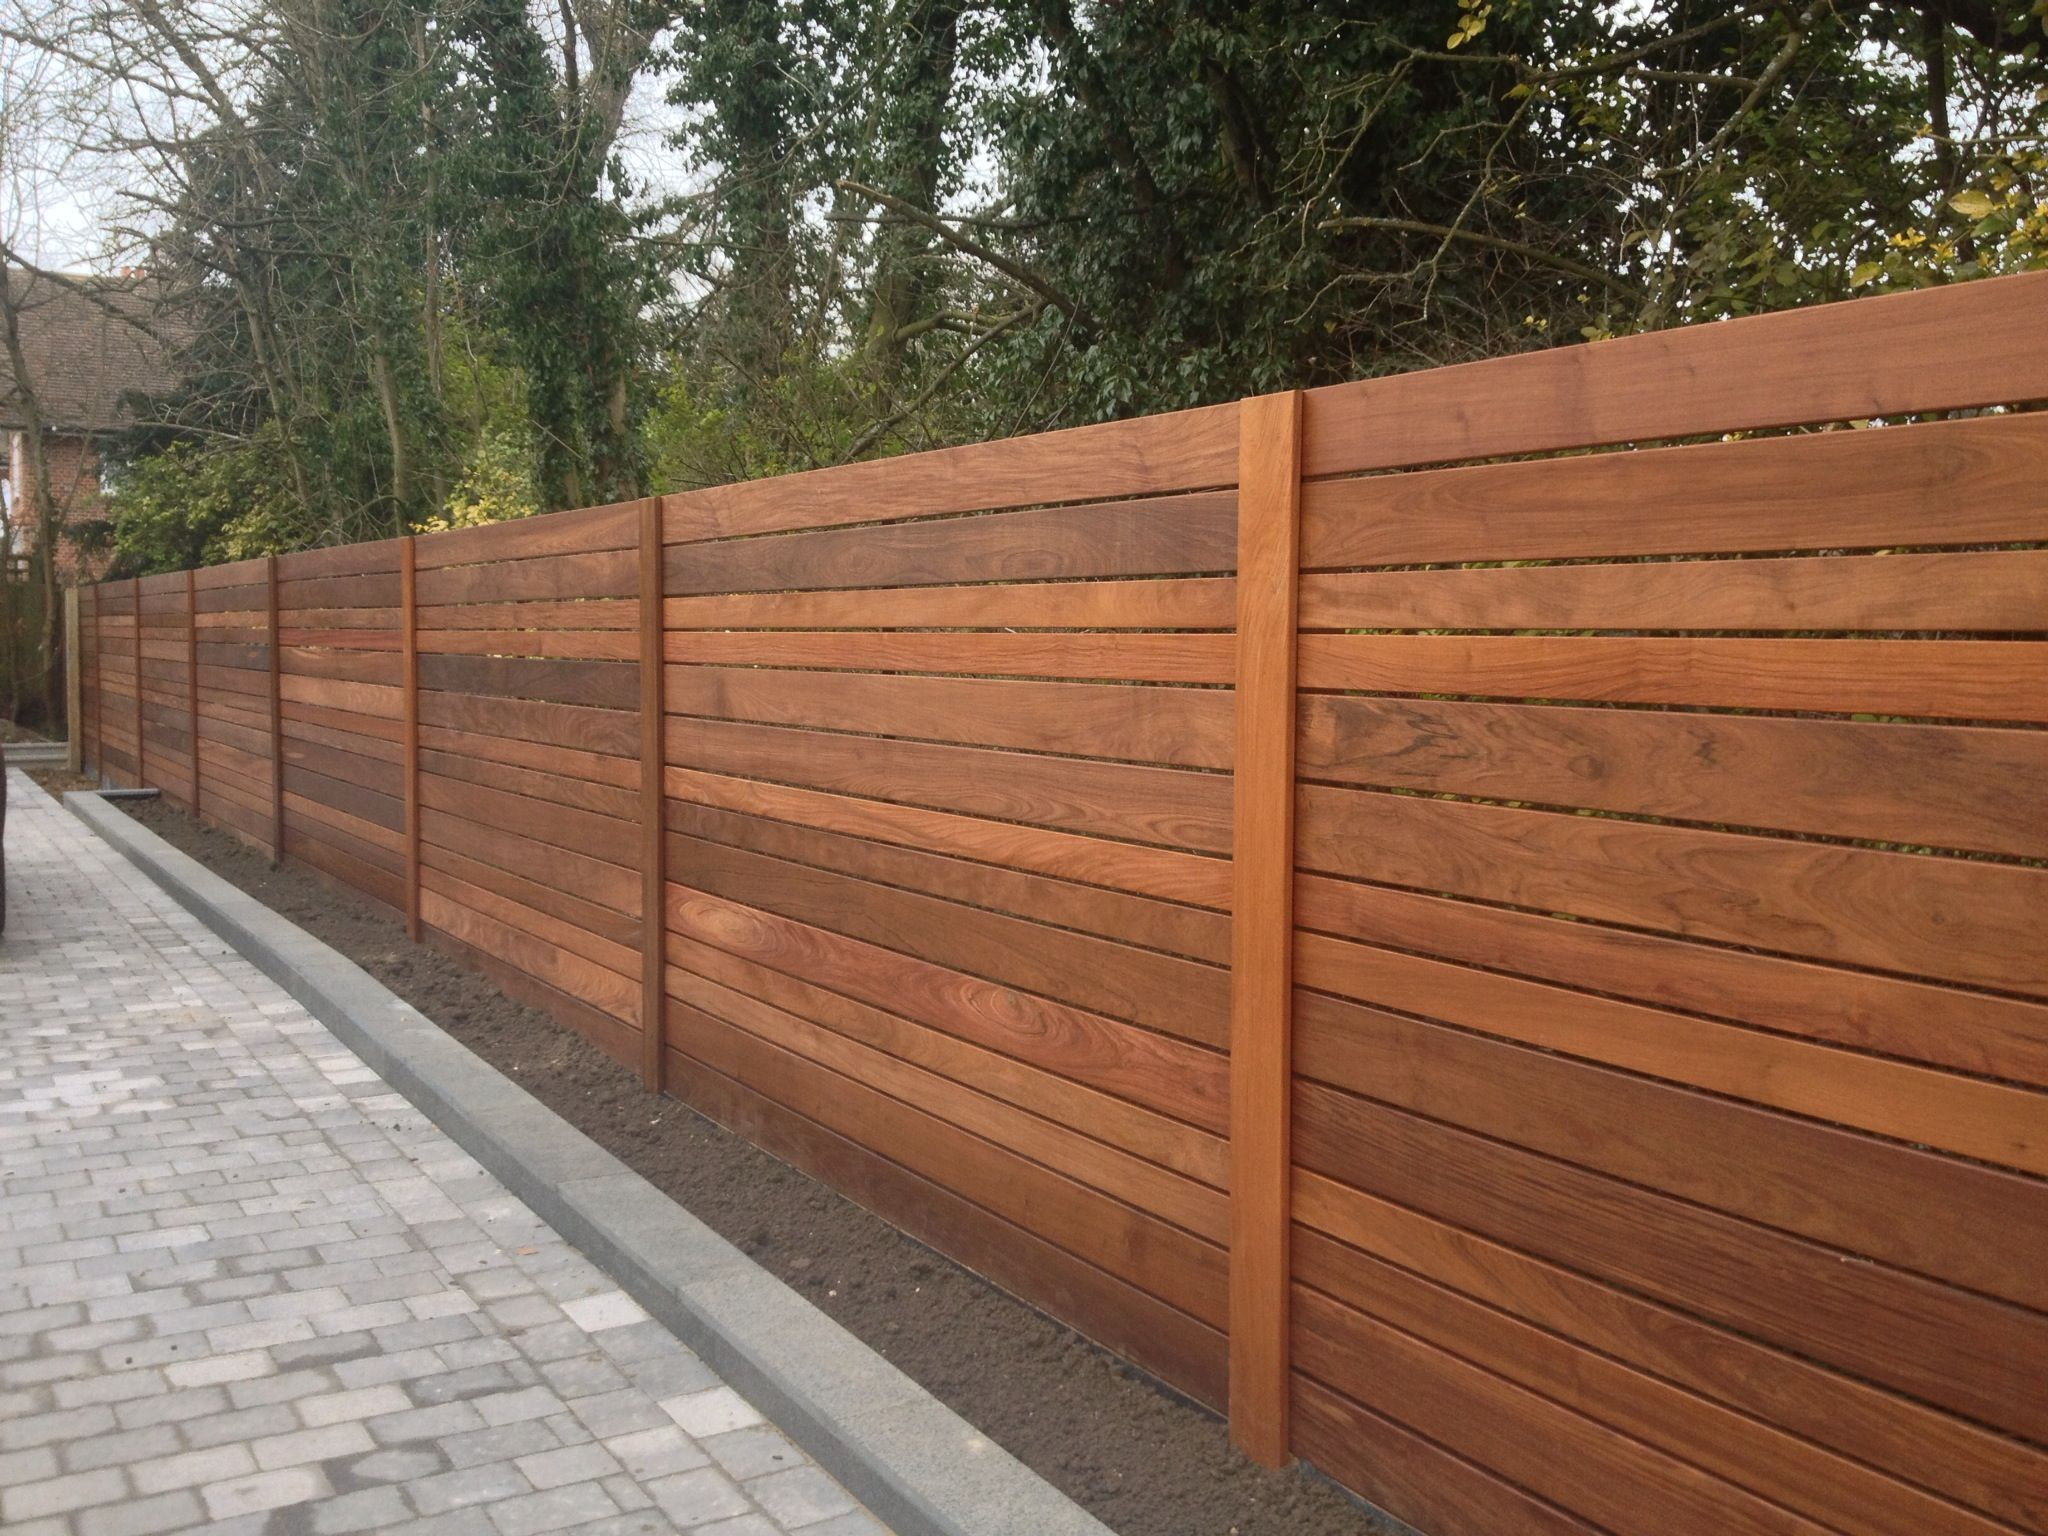 Ipe Hardwood Fence Design Interiors Garden Decking